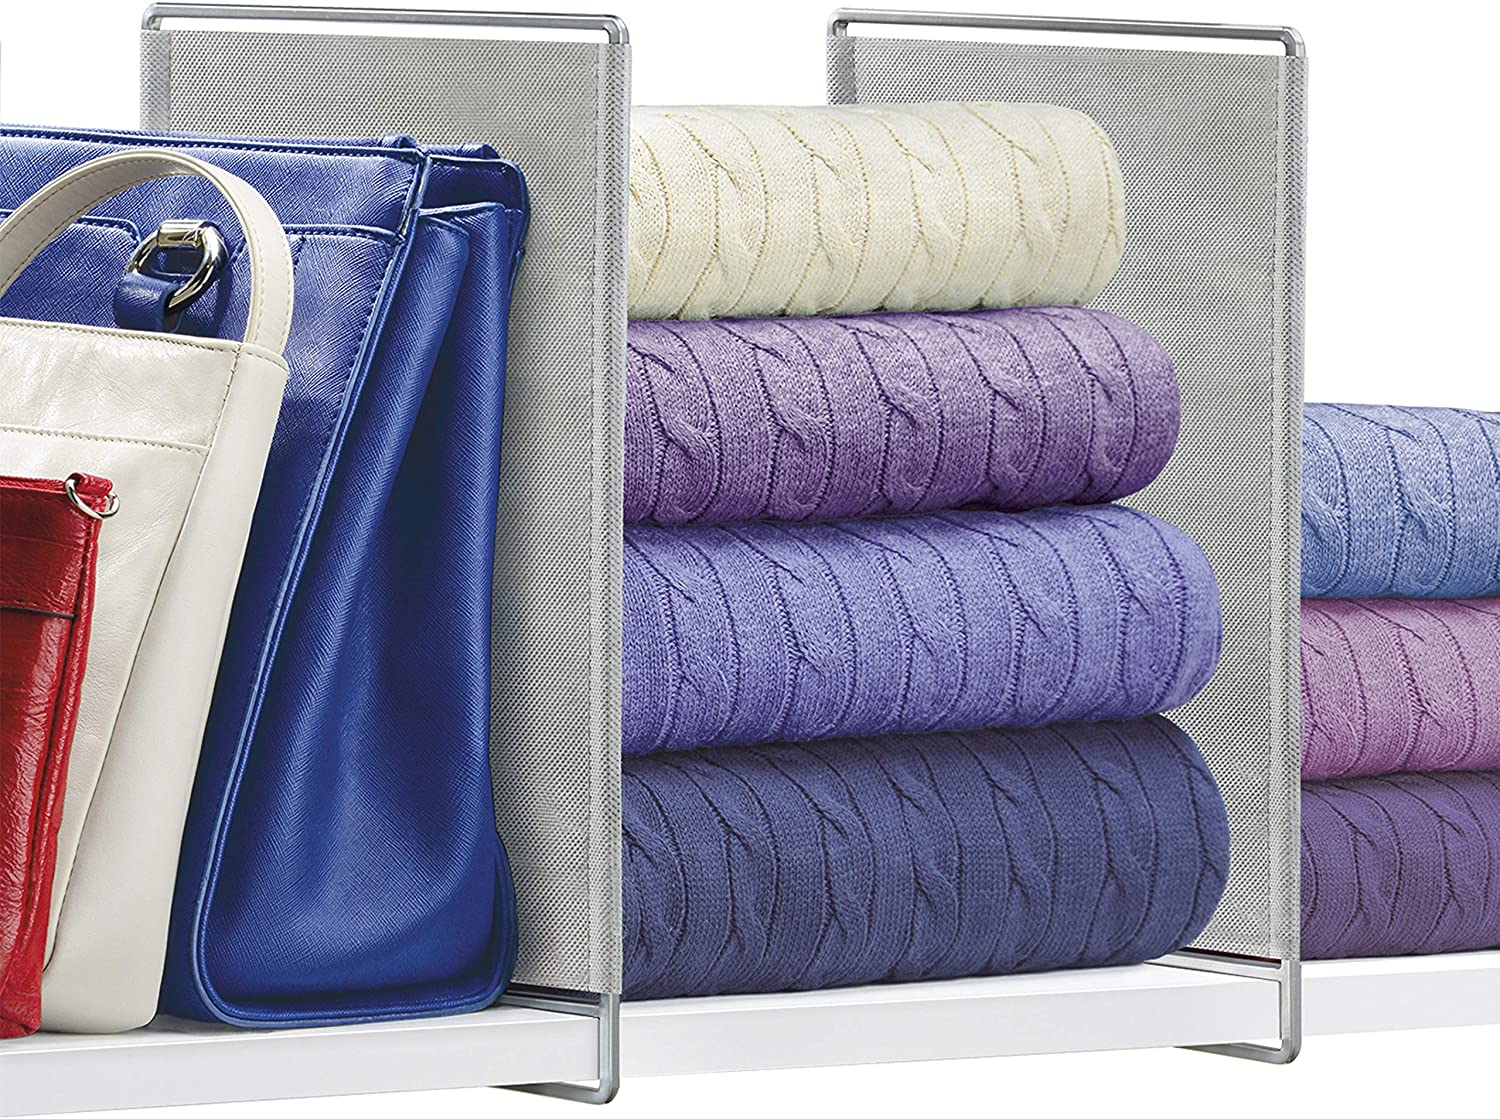 Lynk Vela Shelf Dividers - Closet Shelf Organizer (Set of 2) - Platinum